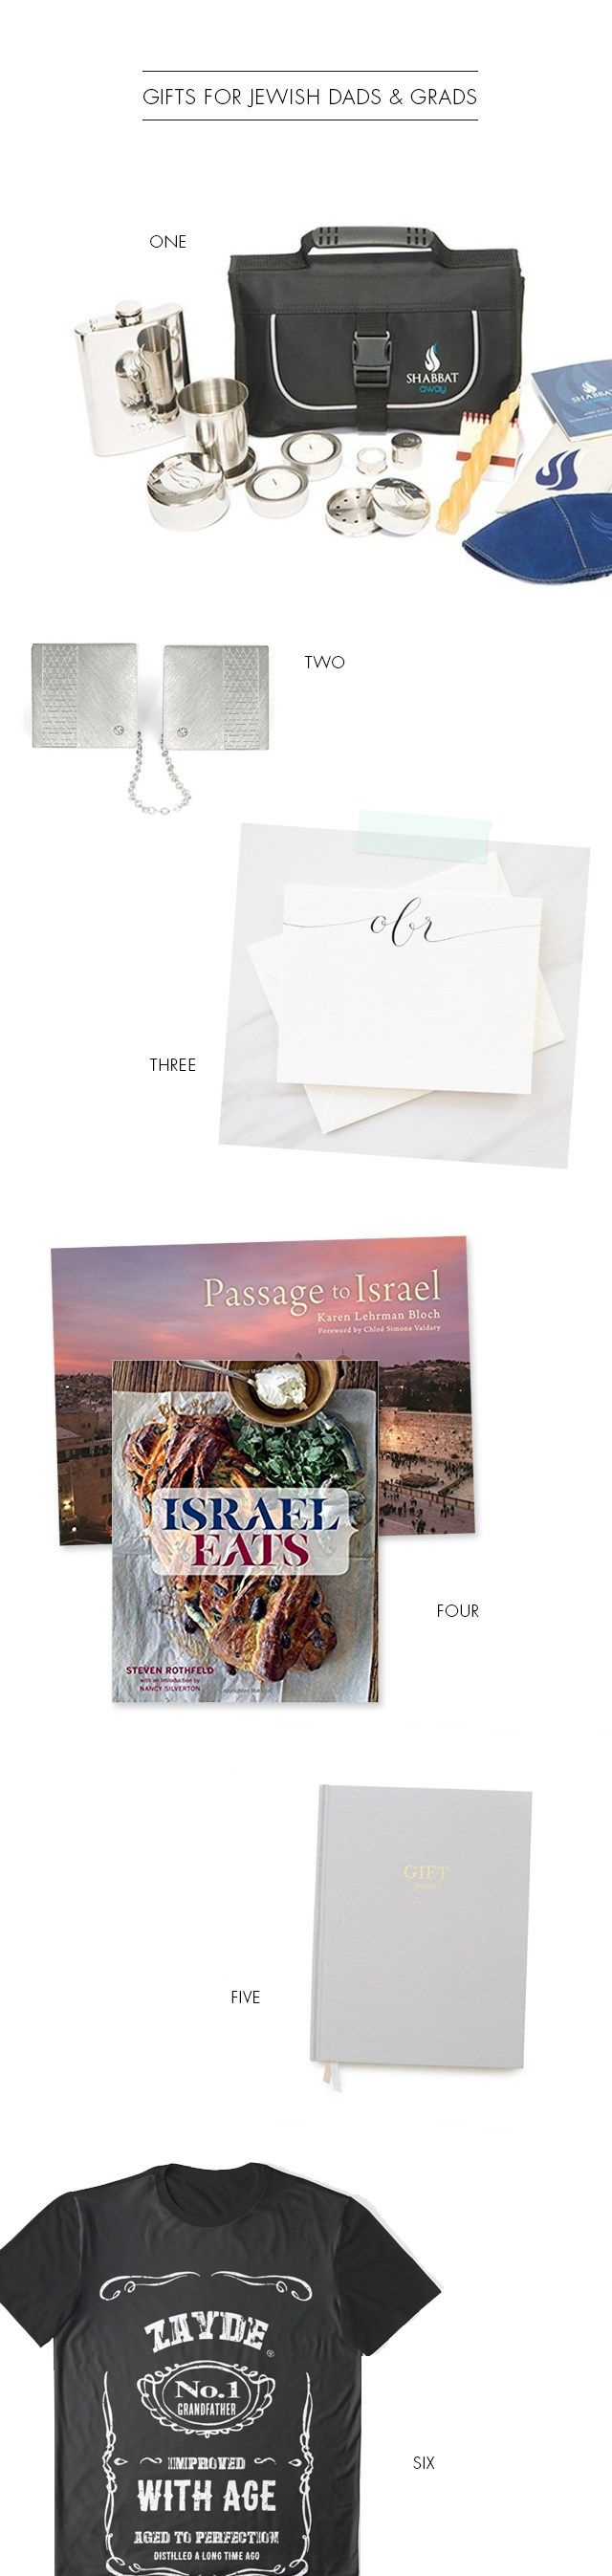 Gift Ideas for the Jewish Dad & Grad